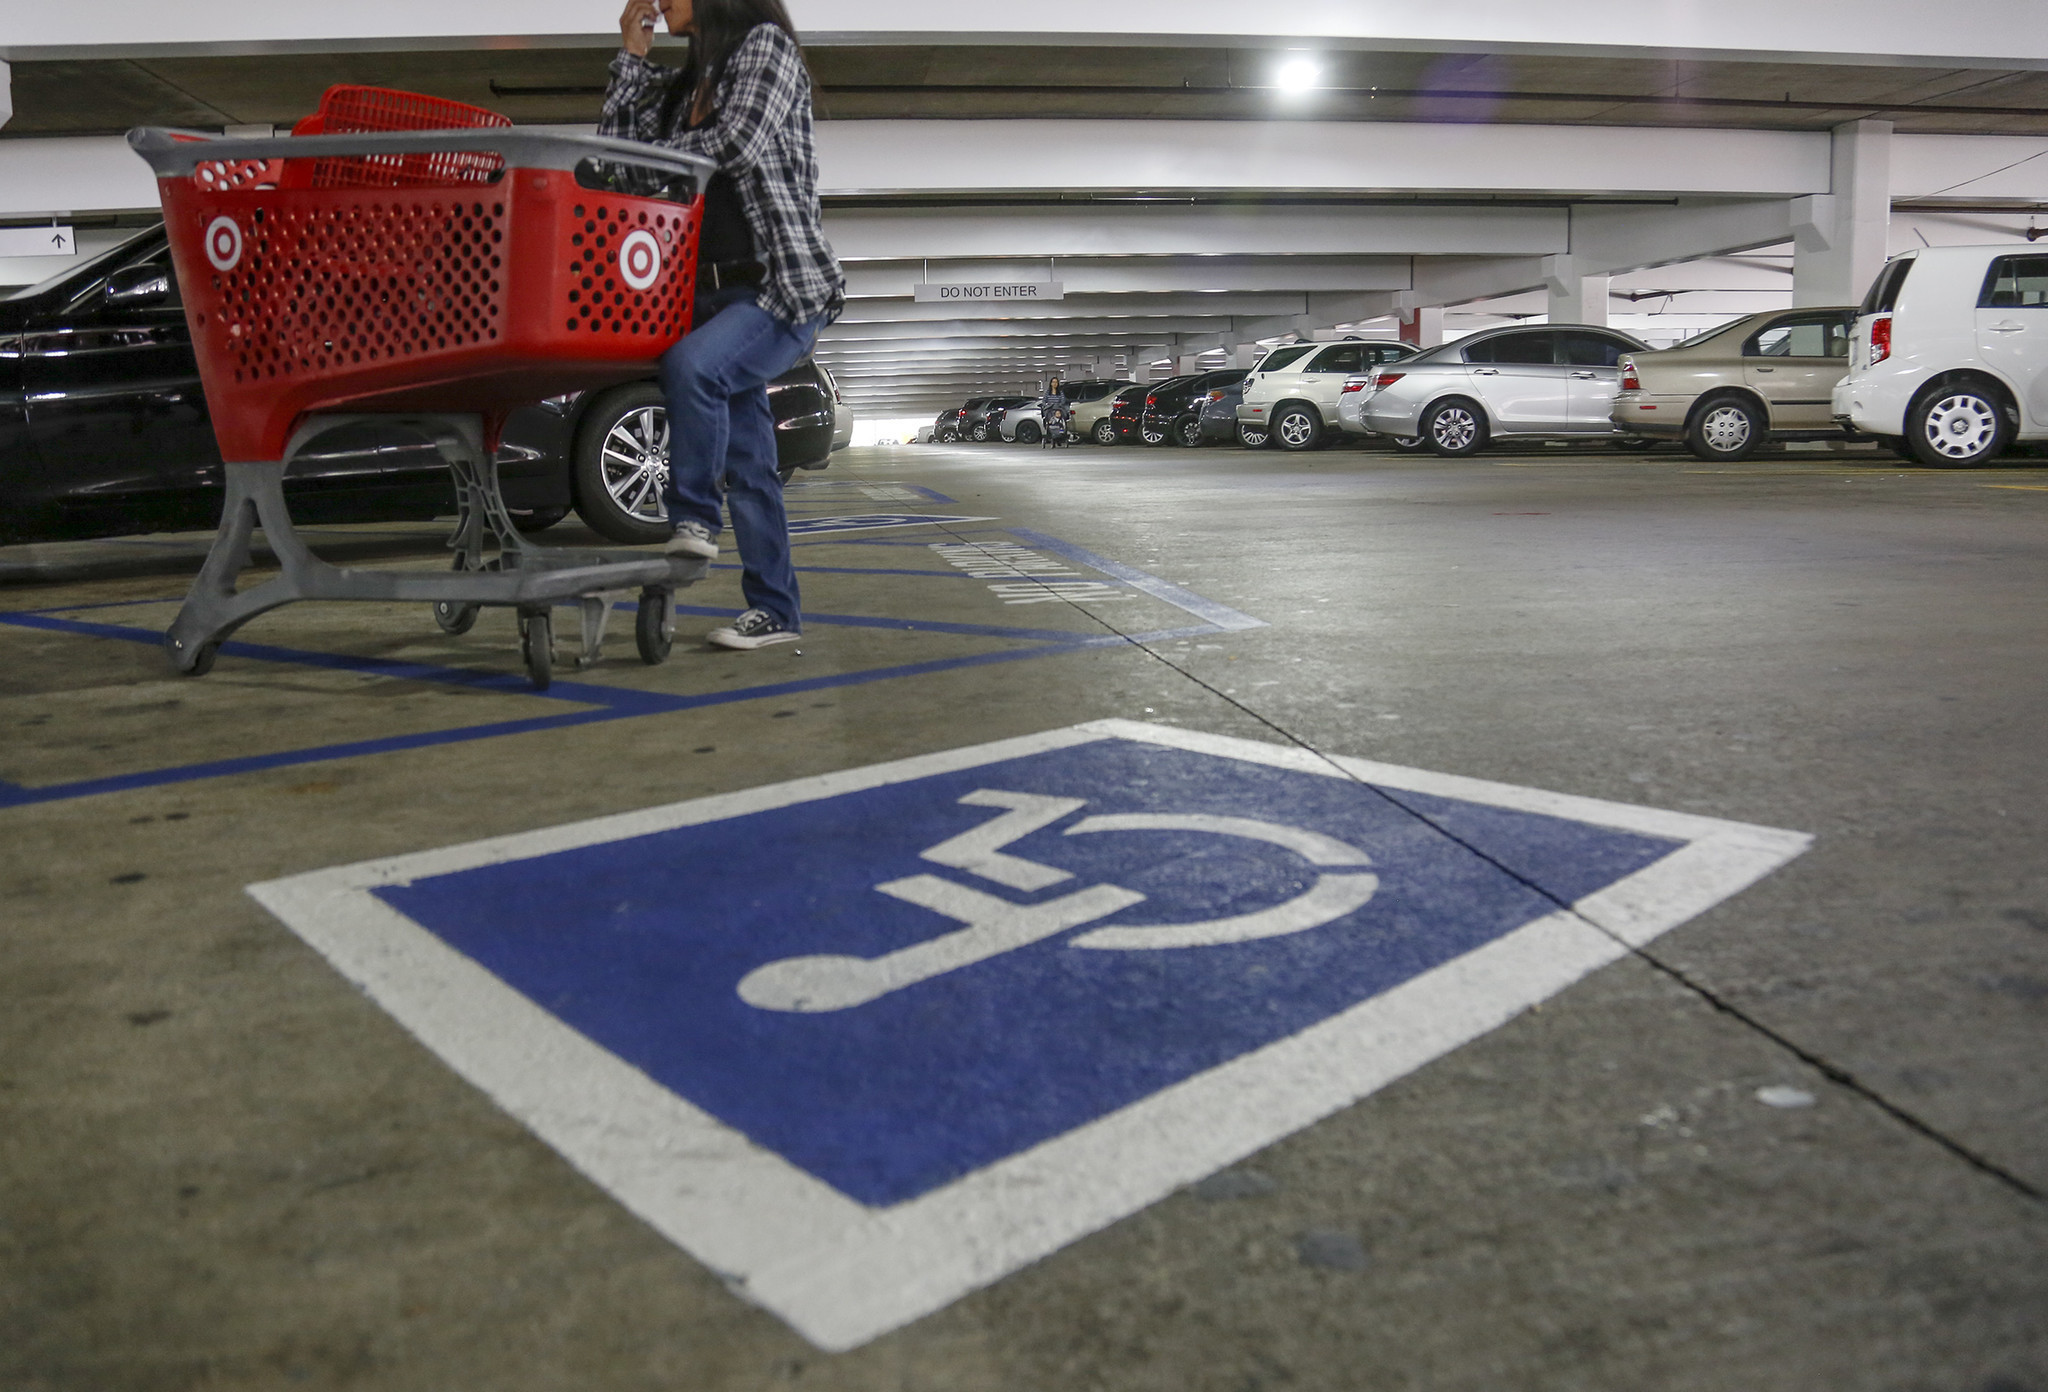 Audit of disabled parking placard applications shines light on fraud